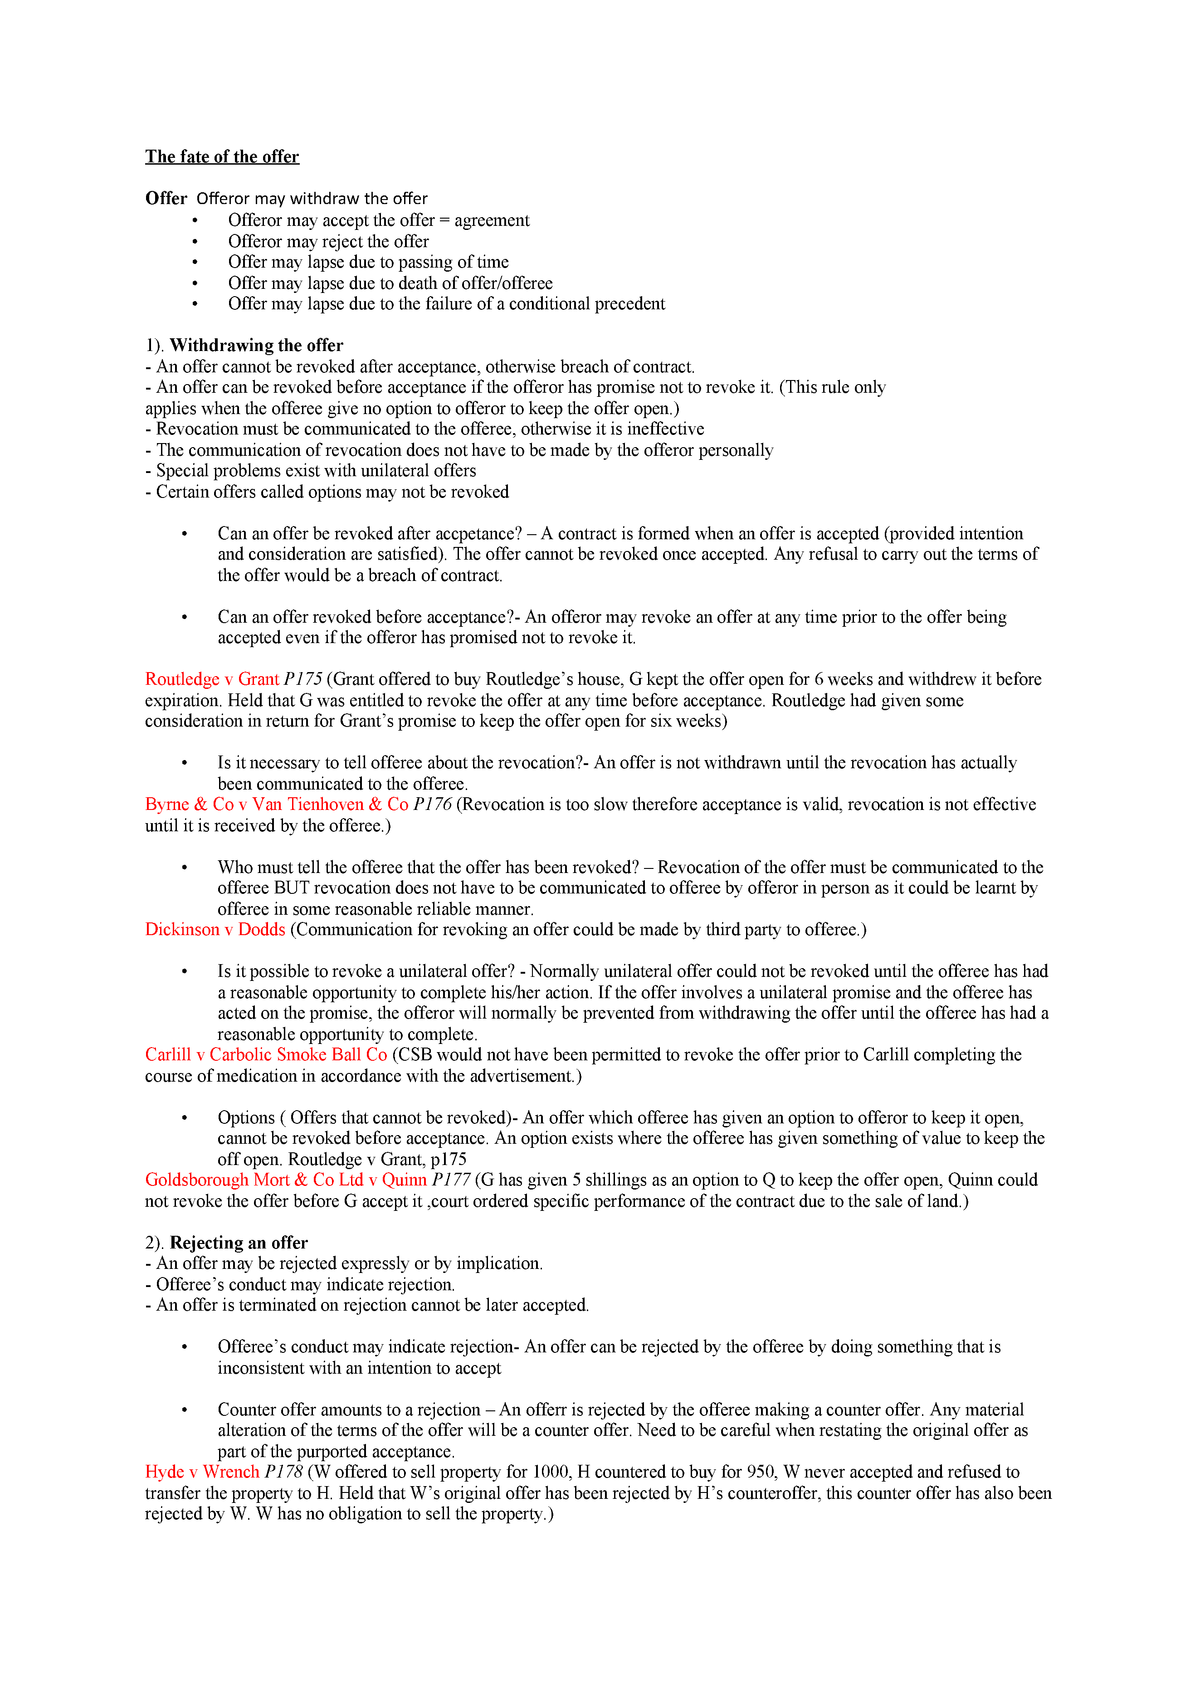 Law in Commerce Ultimate Law Exam Notes - BTF1010 - Monash